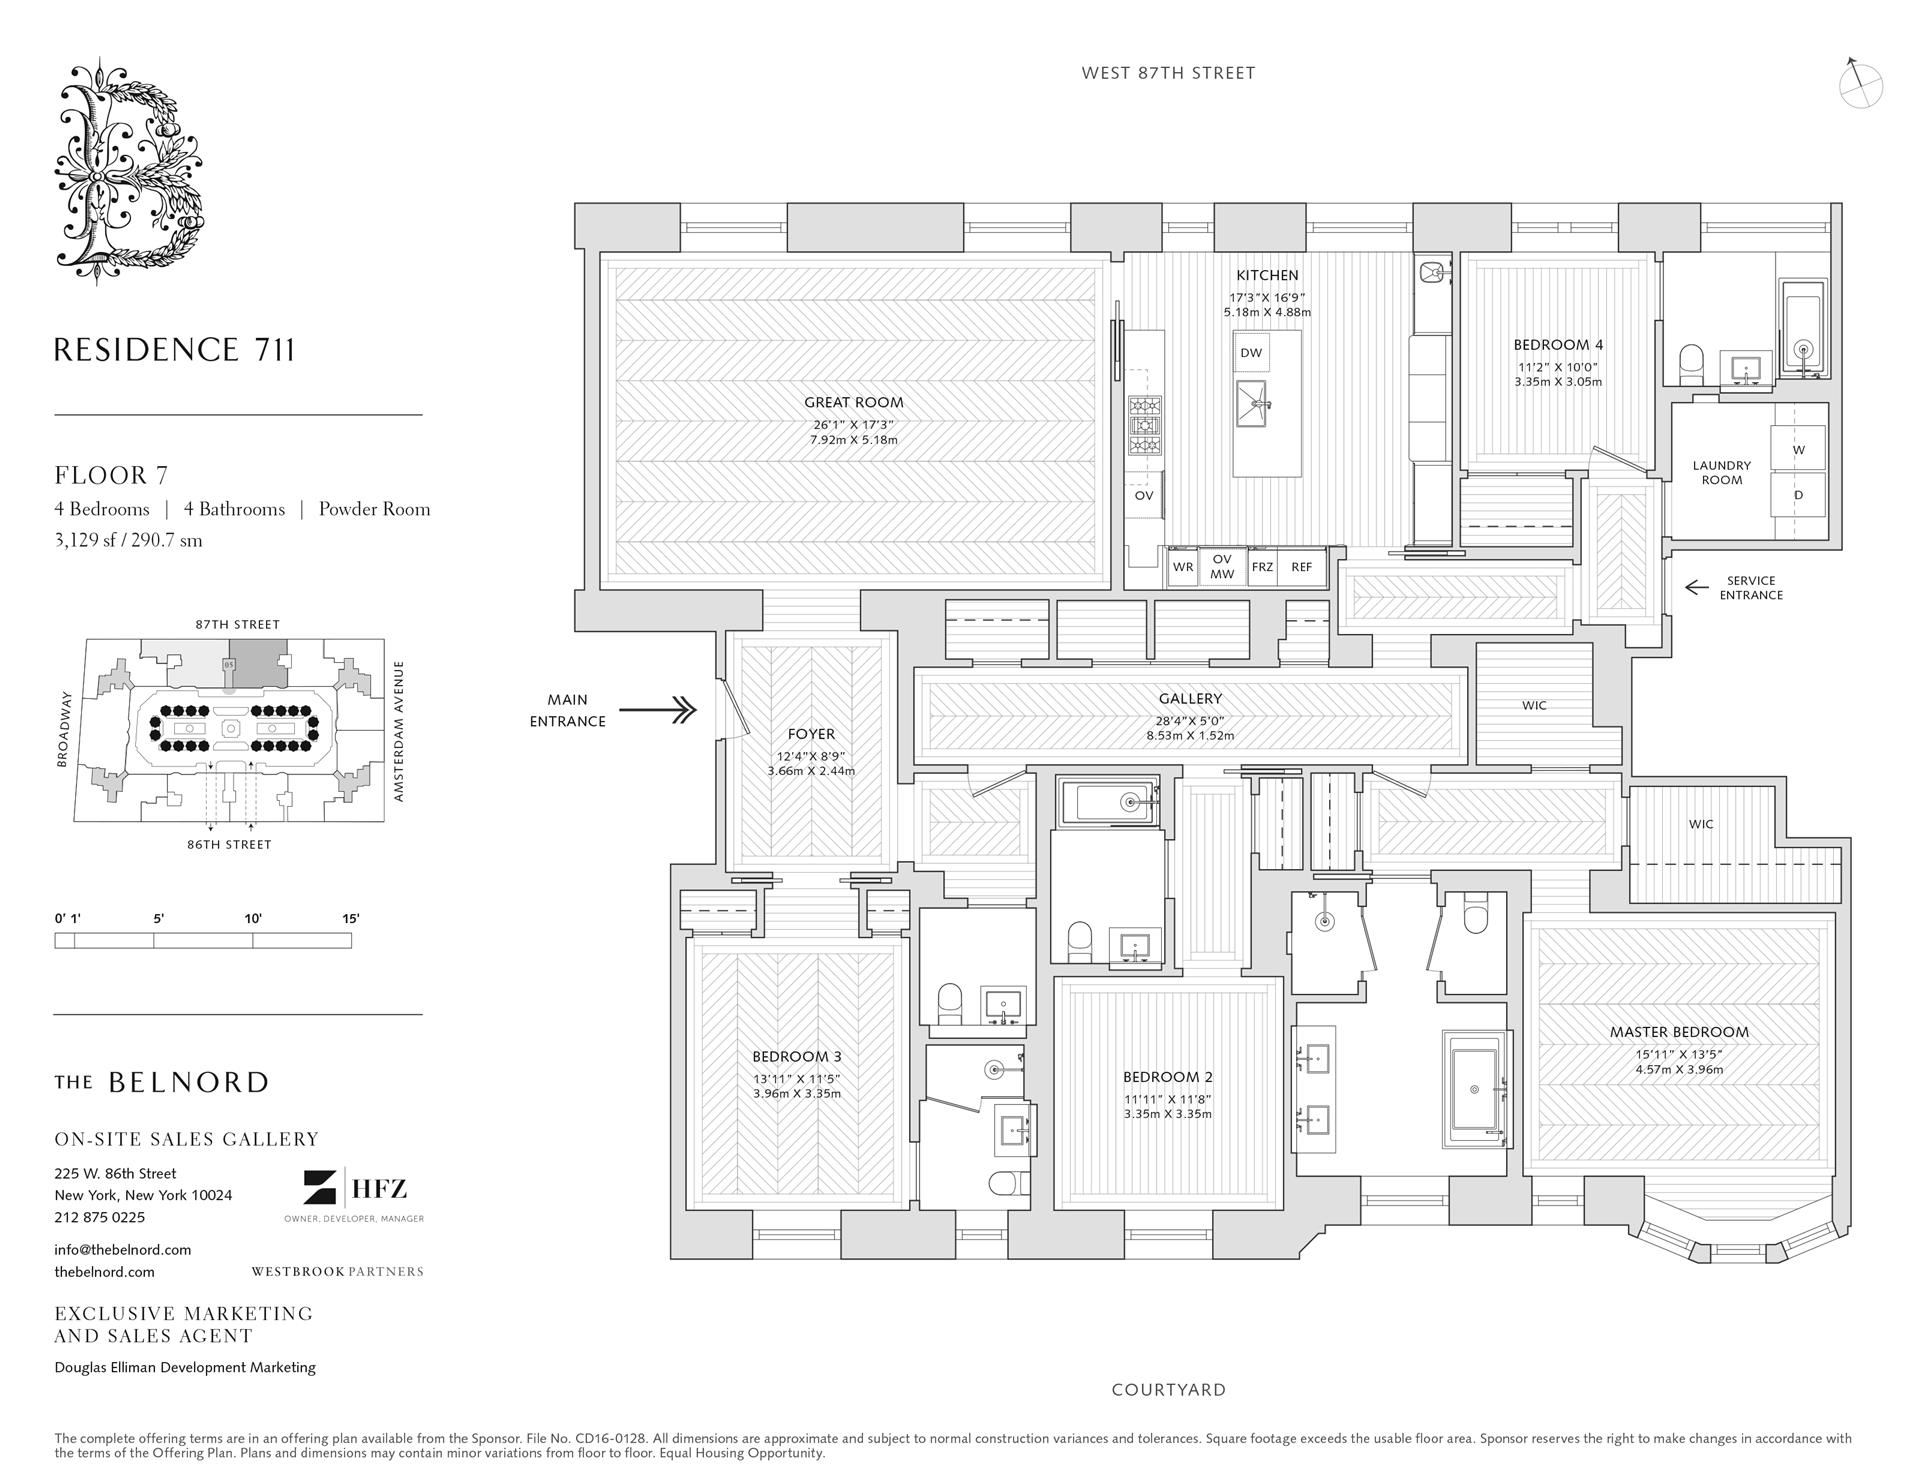 Floor plan of The Belnord, 225 West 86th St, 711 - Upper West Side, New York